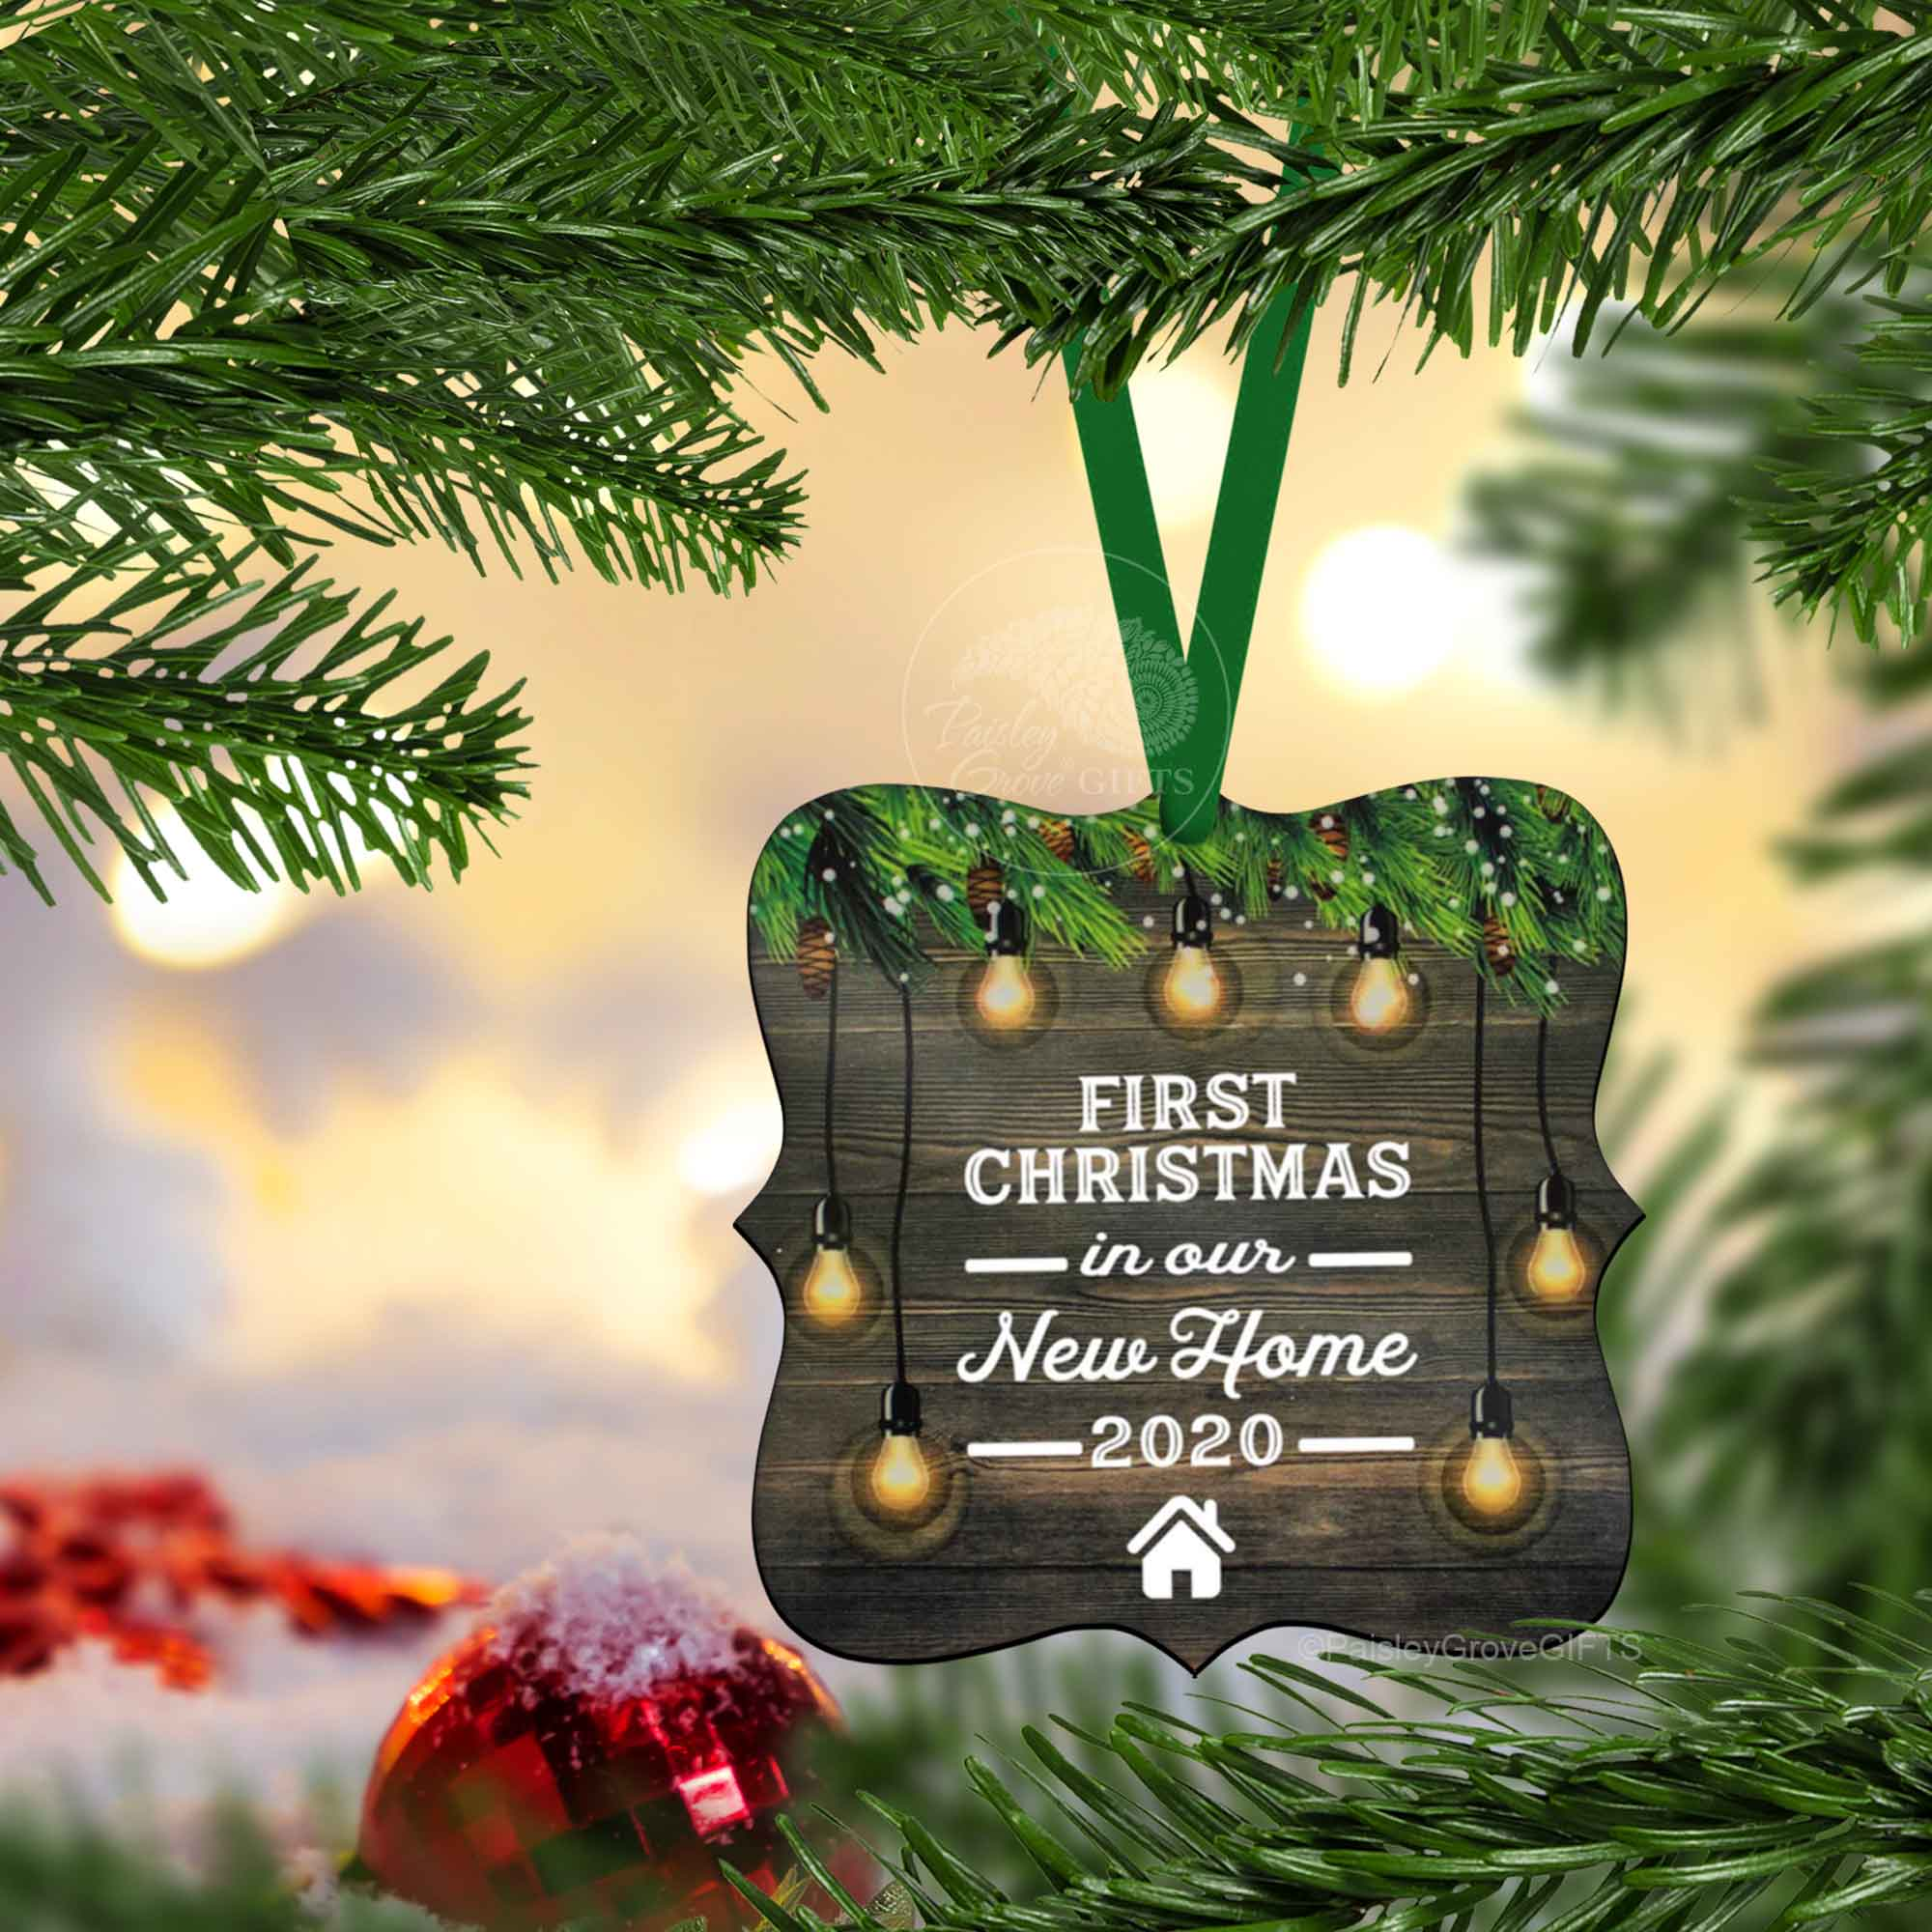 CopyrightPaisleyGroveGIFTS S510m 1st Xmas in our new home Holiday Keepsake Ornament Housewarming Gift